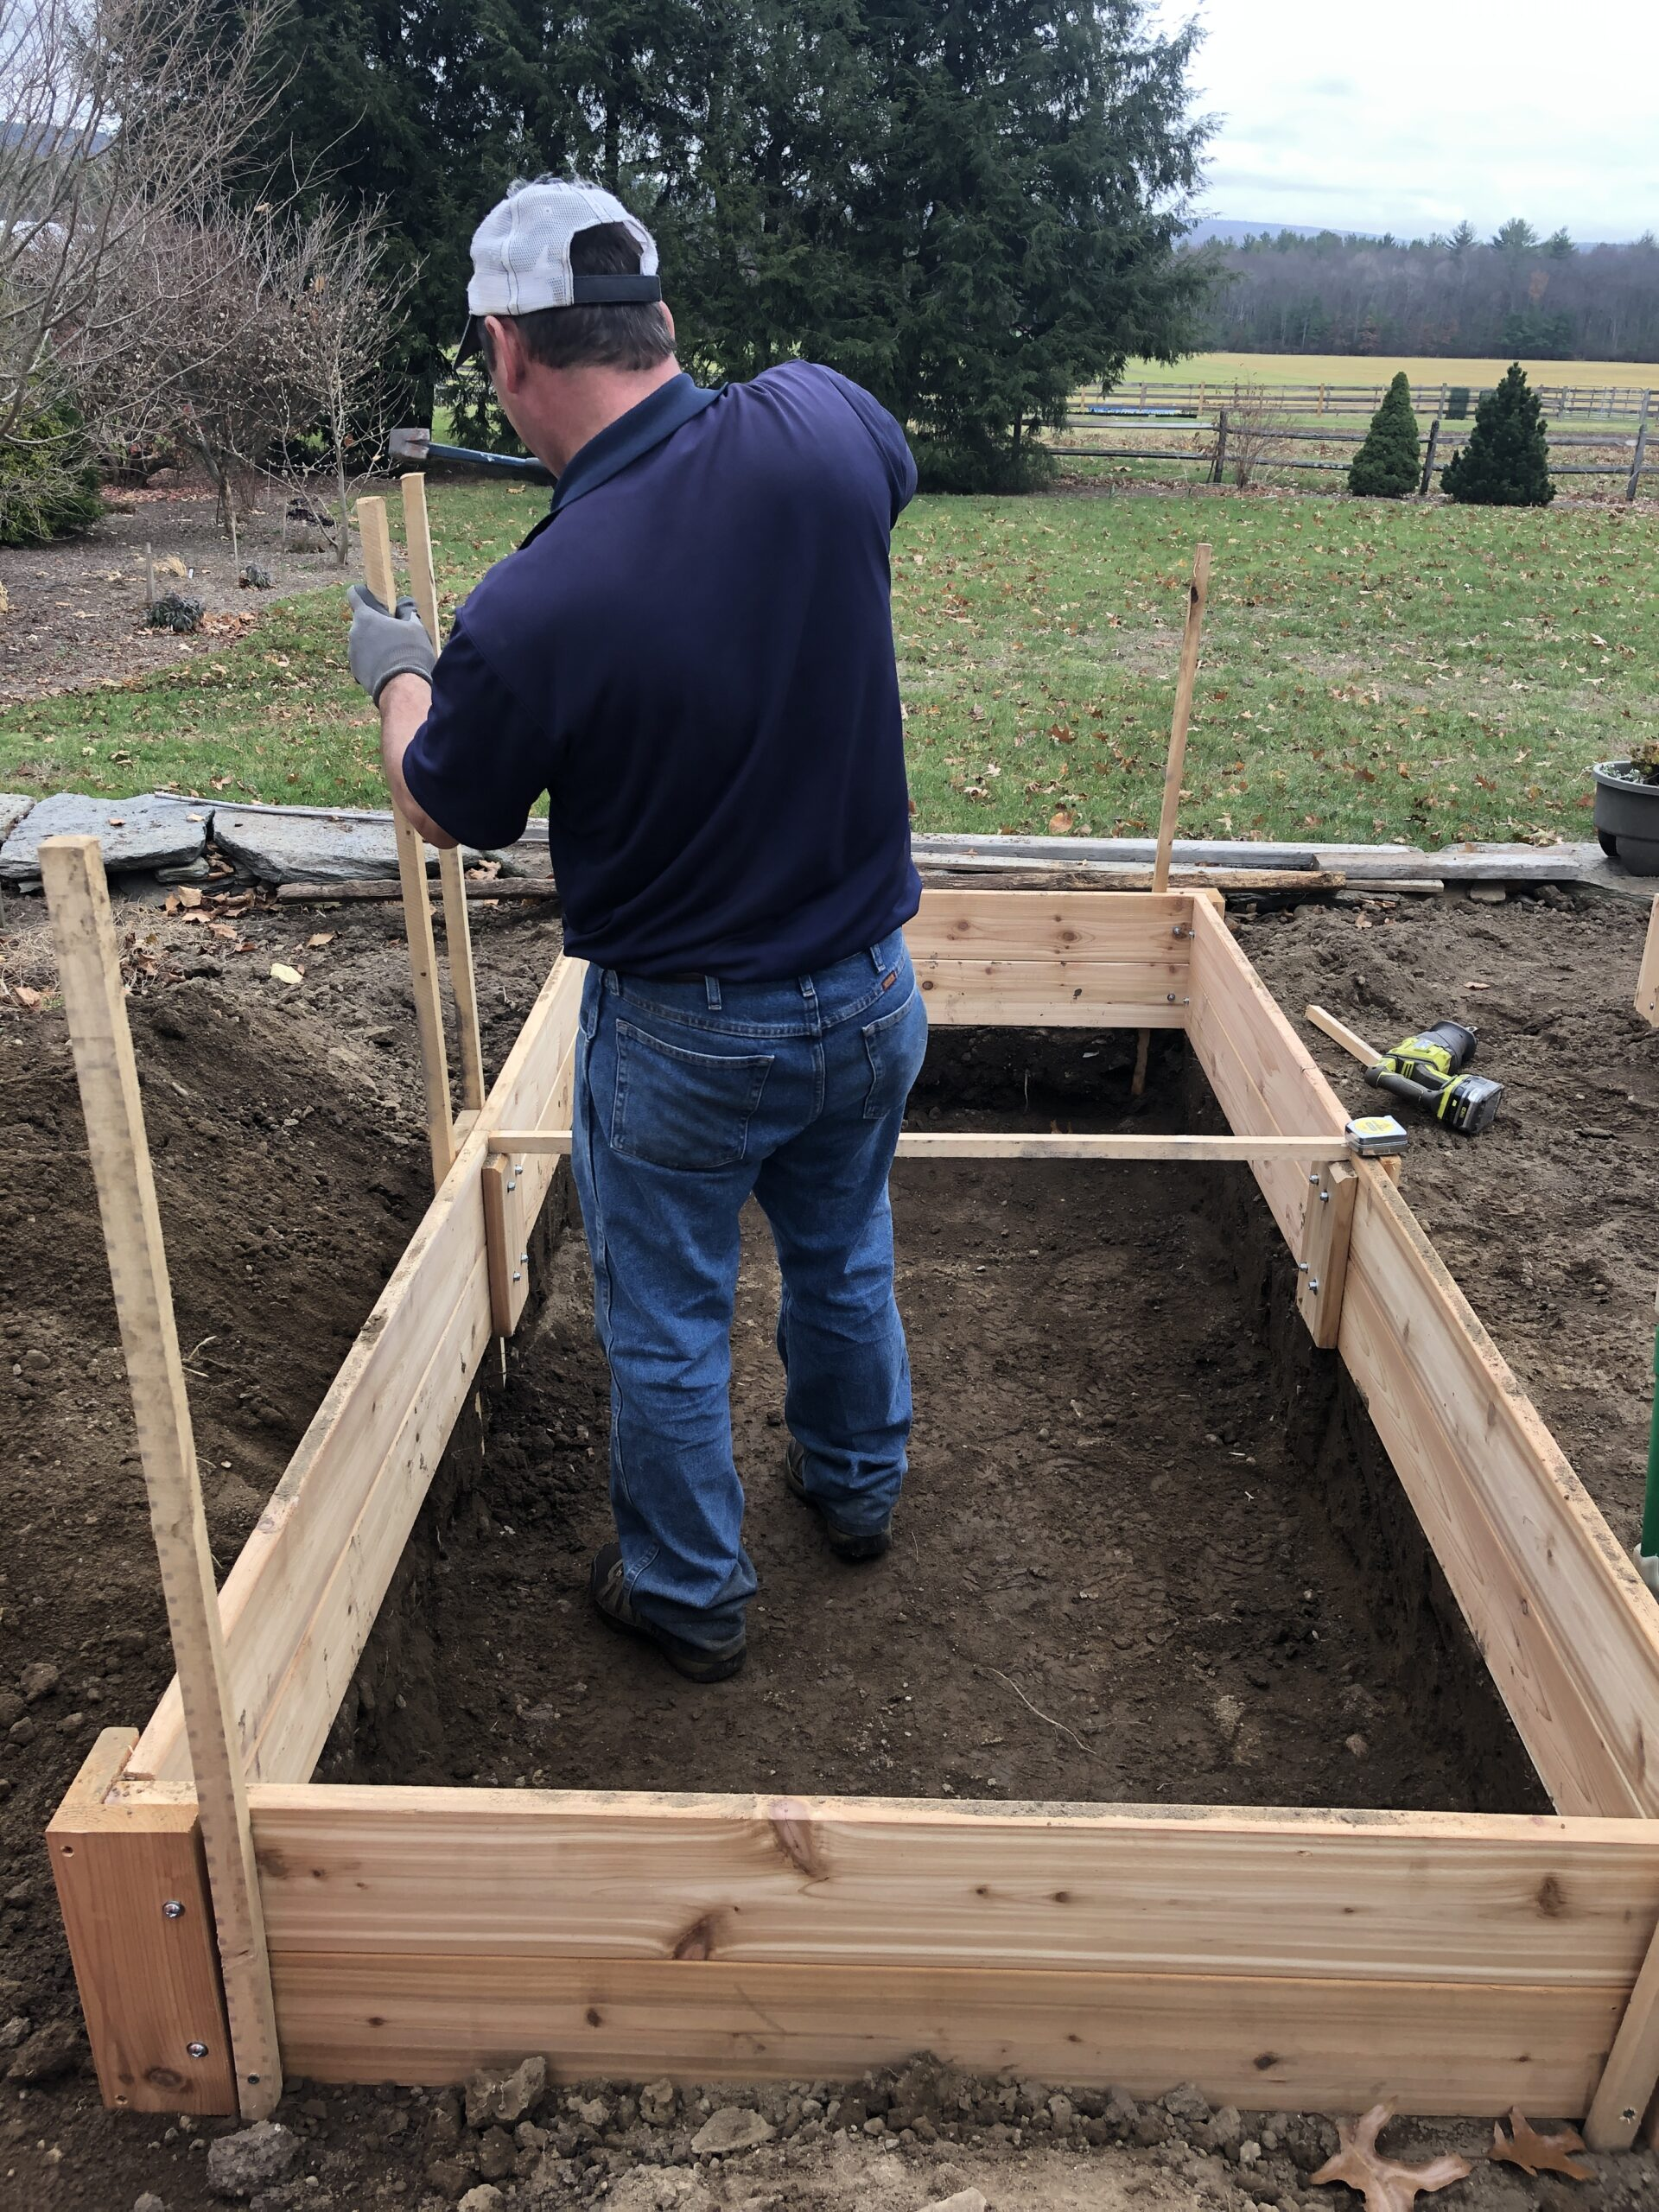 Man standing inside frame of raised bed, pounding in stakes; lawn, shrubs and trees in background